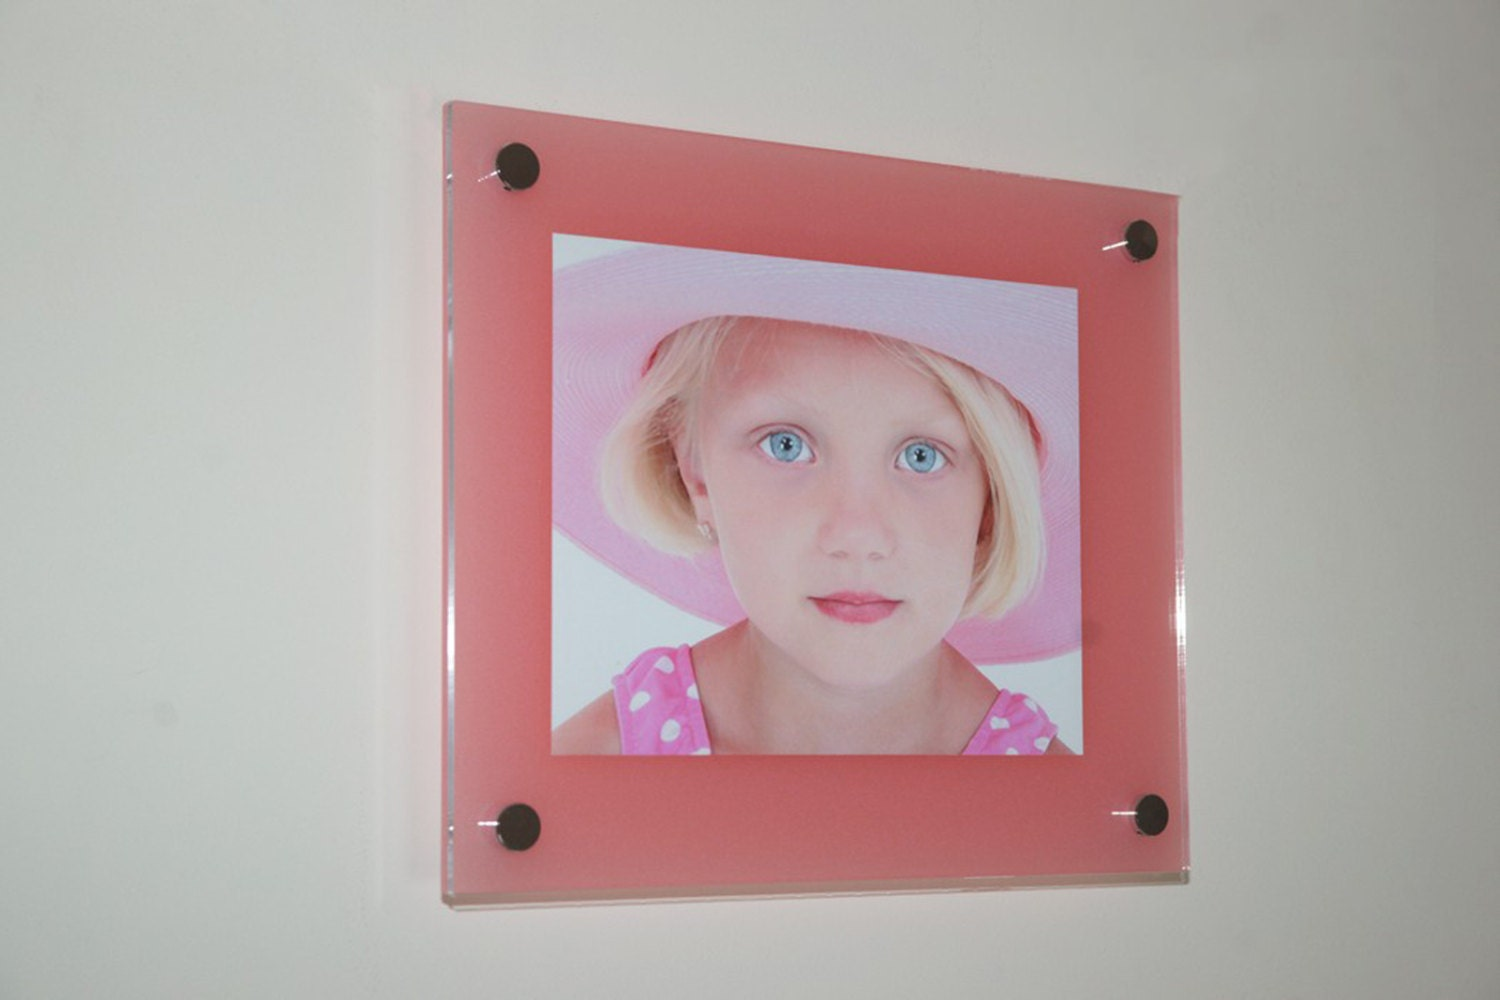 Pink frost high gloss cheshire acrylic wall mount 10 x 8 25 x 20 pink frost high gloss cheshire acrylic wall mount 10 x 8 25 x 20 cm 8 x 10 picture photo frame high gloss perspex plexiglas made in uk jeuxipadfo Image collections